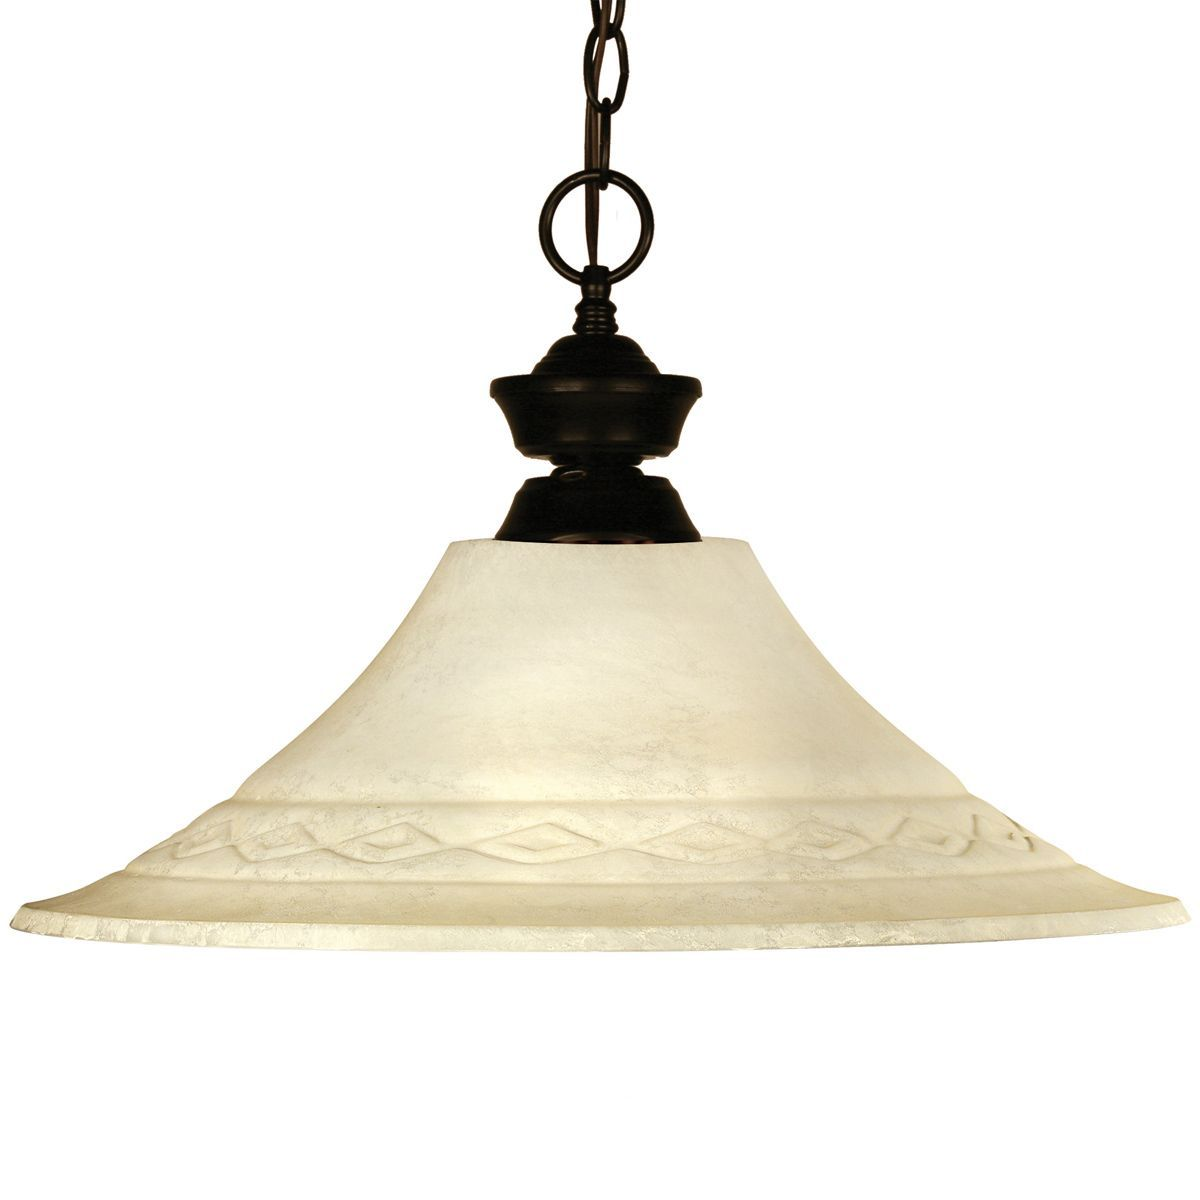 Chicago Phoenix 1 Light Pendant Products In 2019